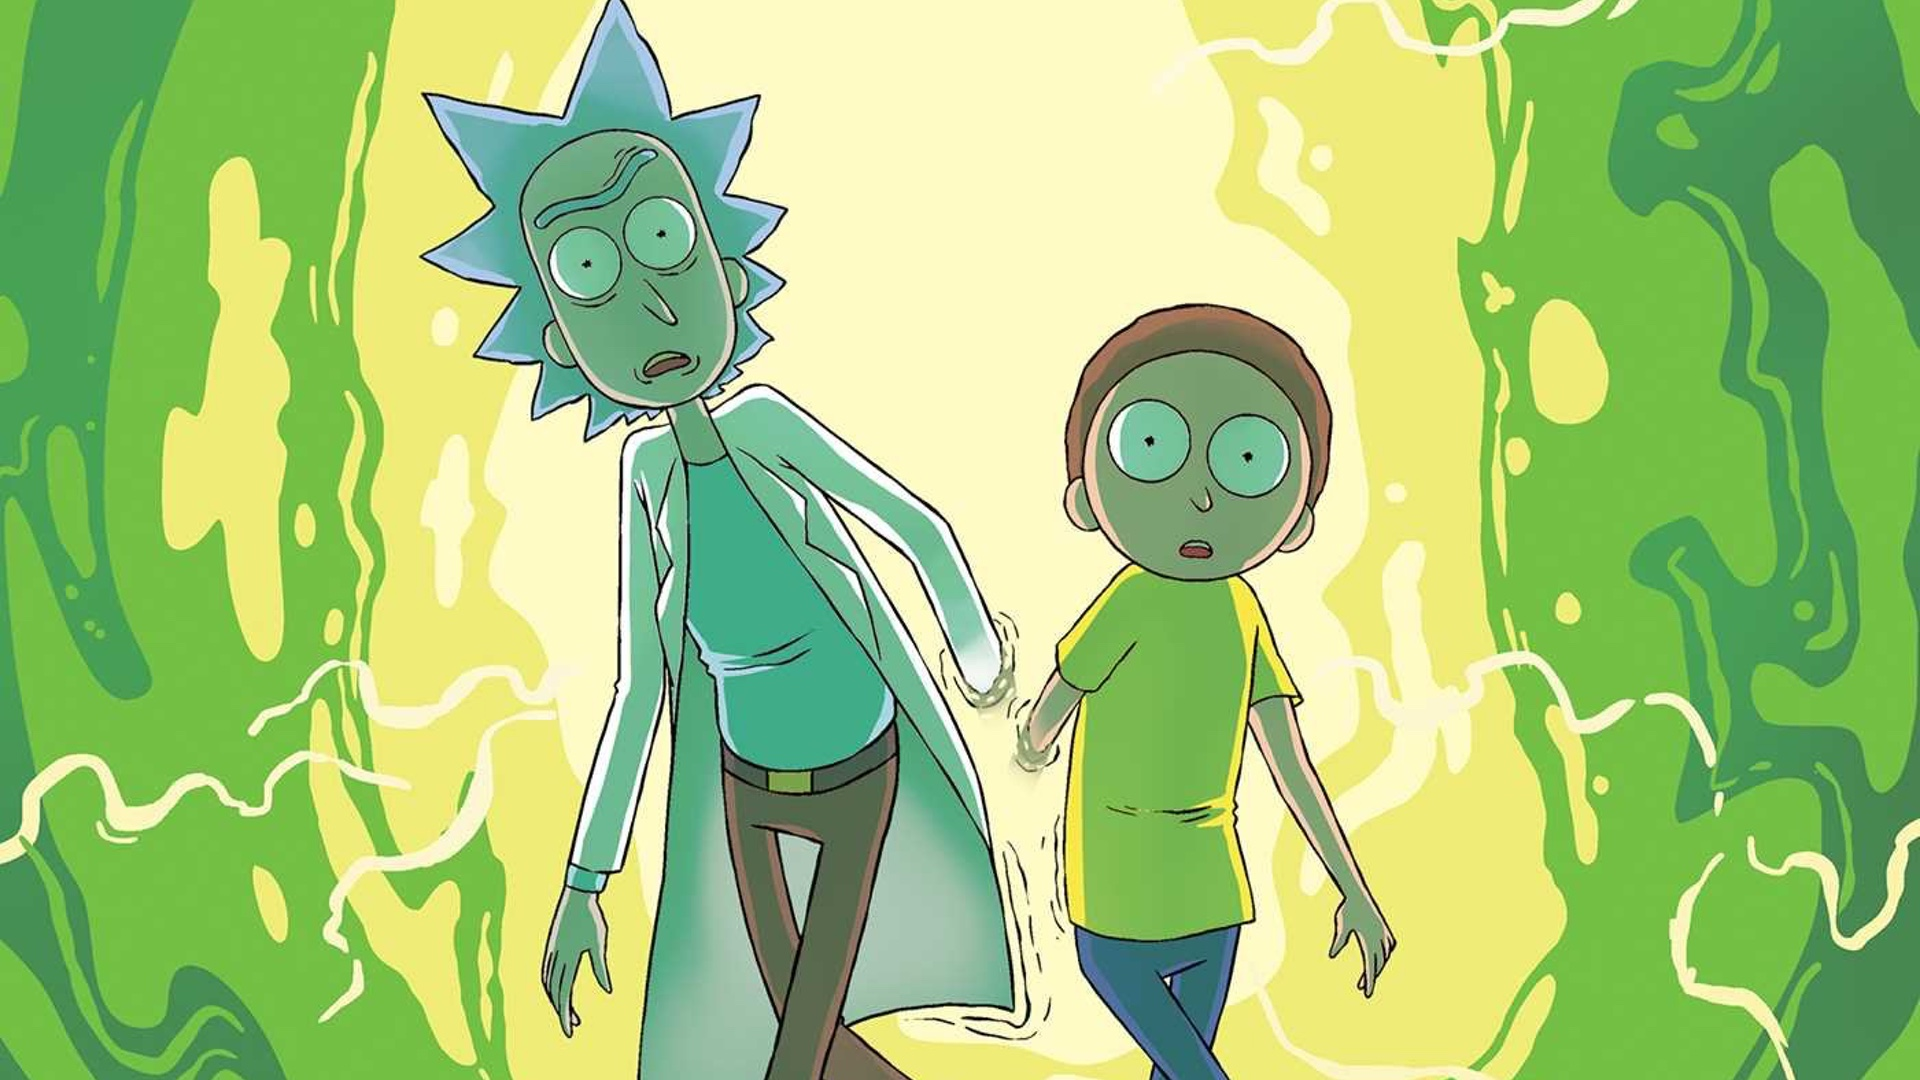 Rick and Morty Season 4 Episode Schedule